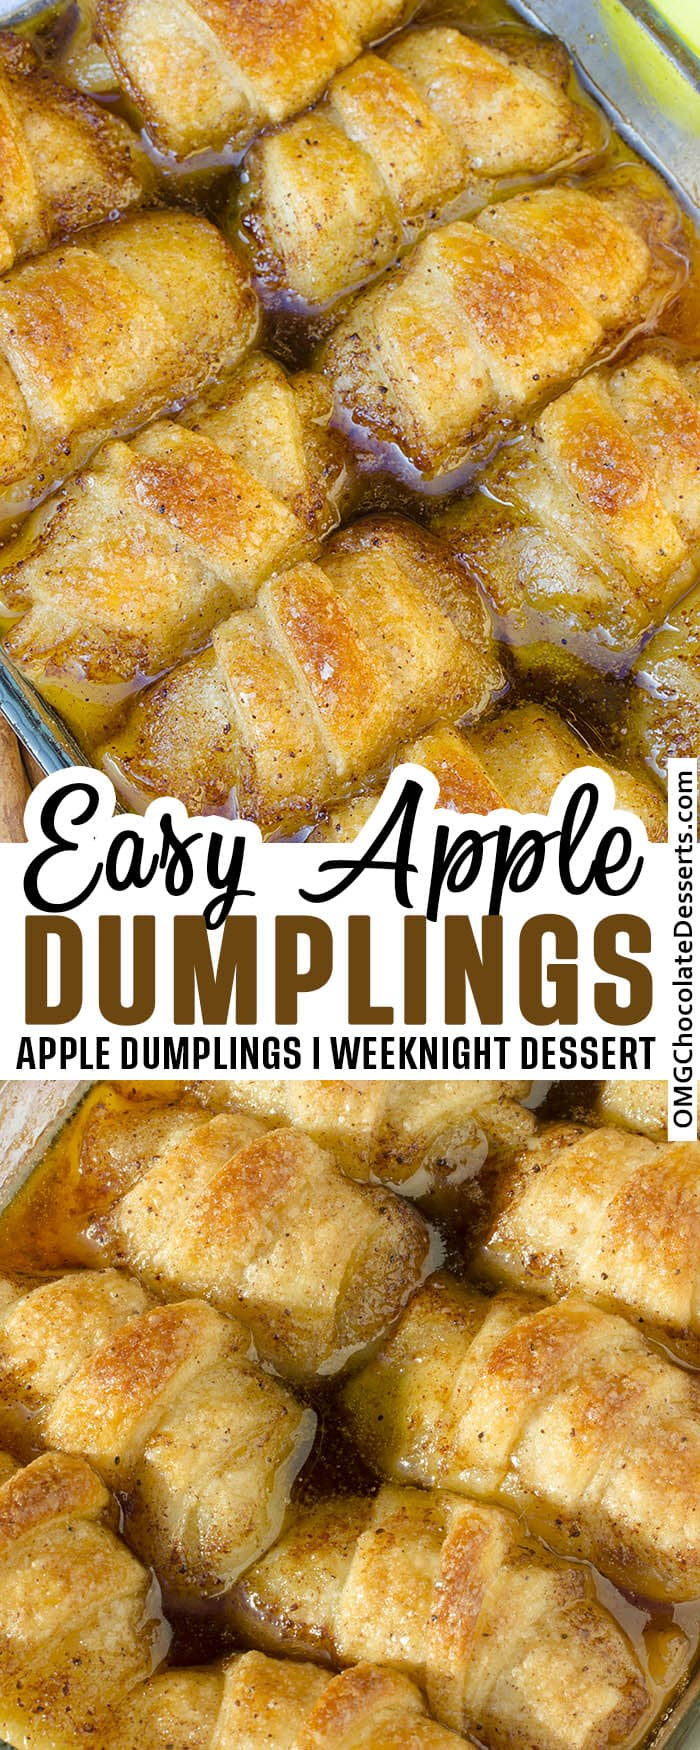 Two different Apple Dumplings images with title deside.